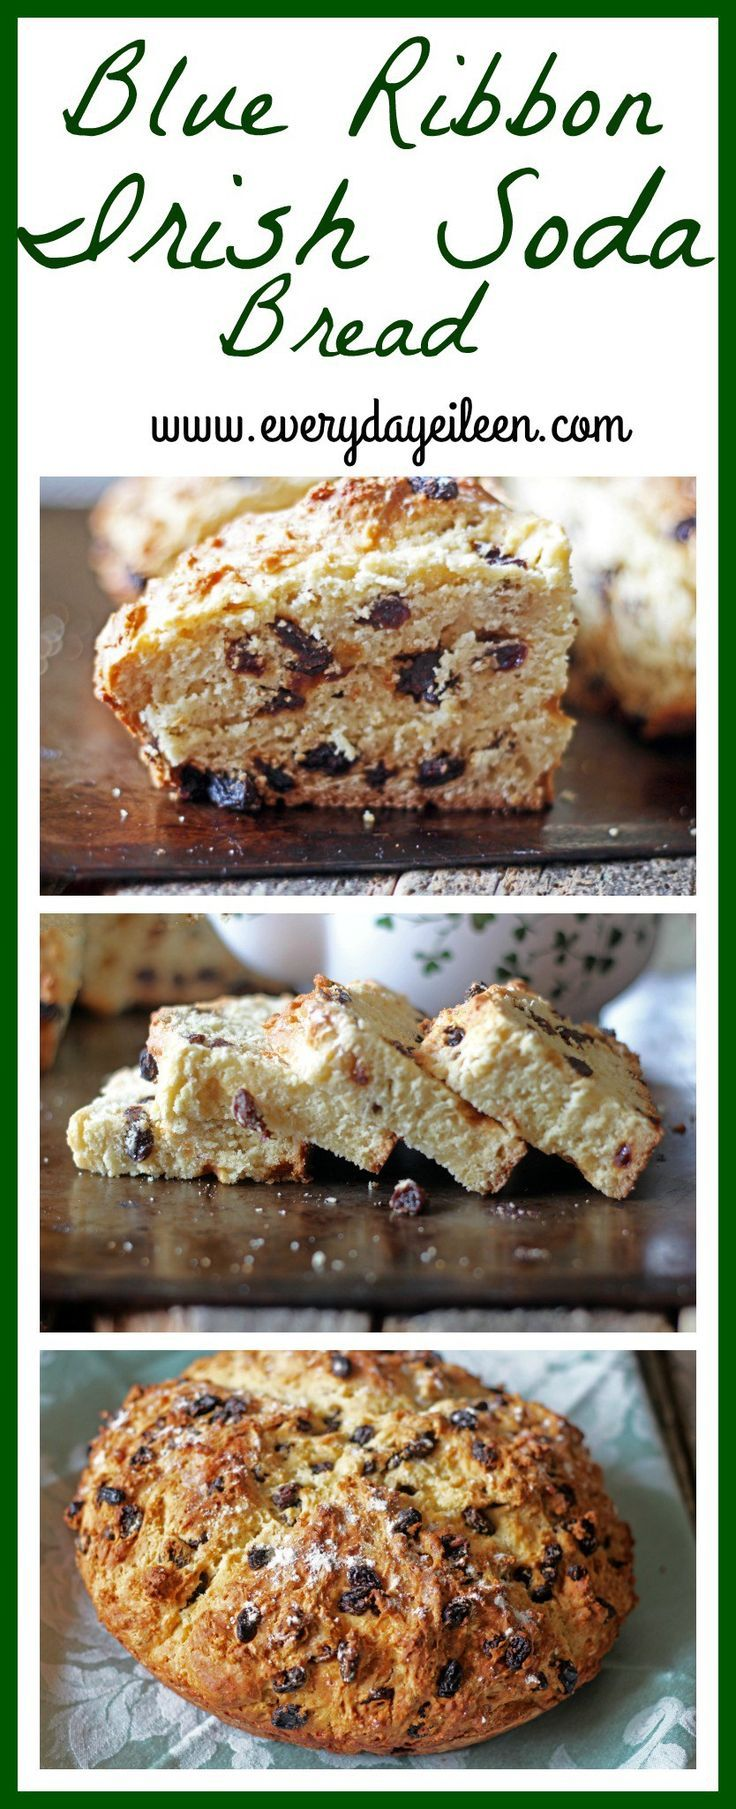 My Blue Ribbon Authentic Irish Soda Bread! This is a recipe I have been making for years. It has won many first place baking awards! An authentic soda bread perfect for any breakfast or Saint Patrick's Day celebration!